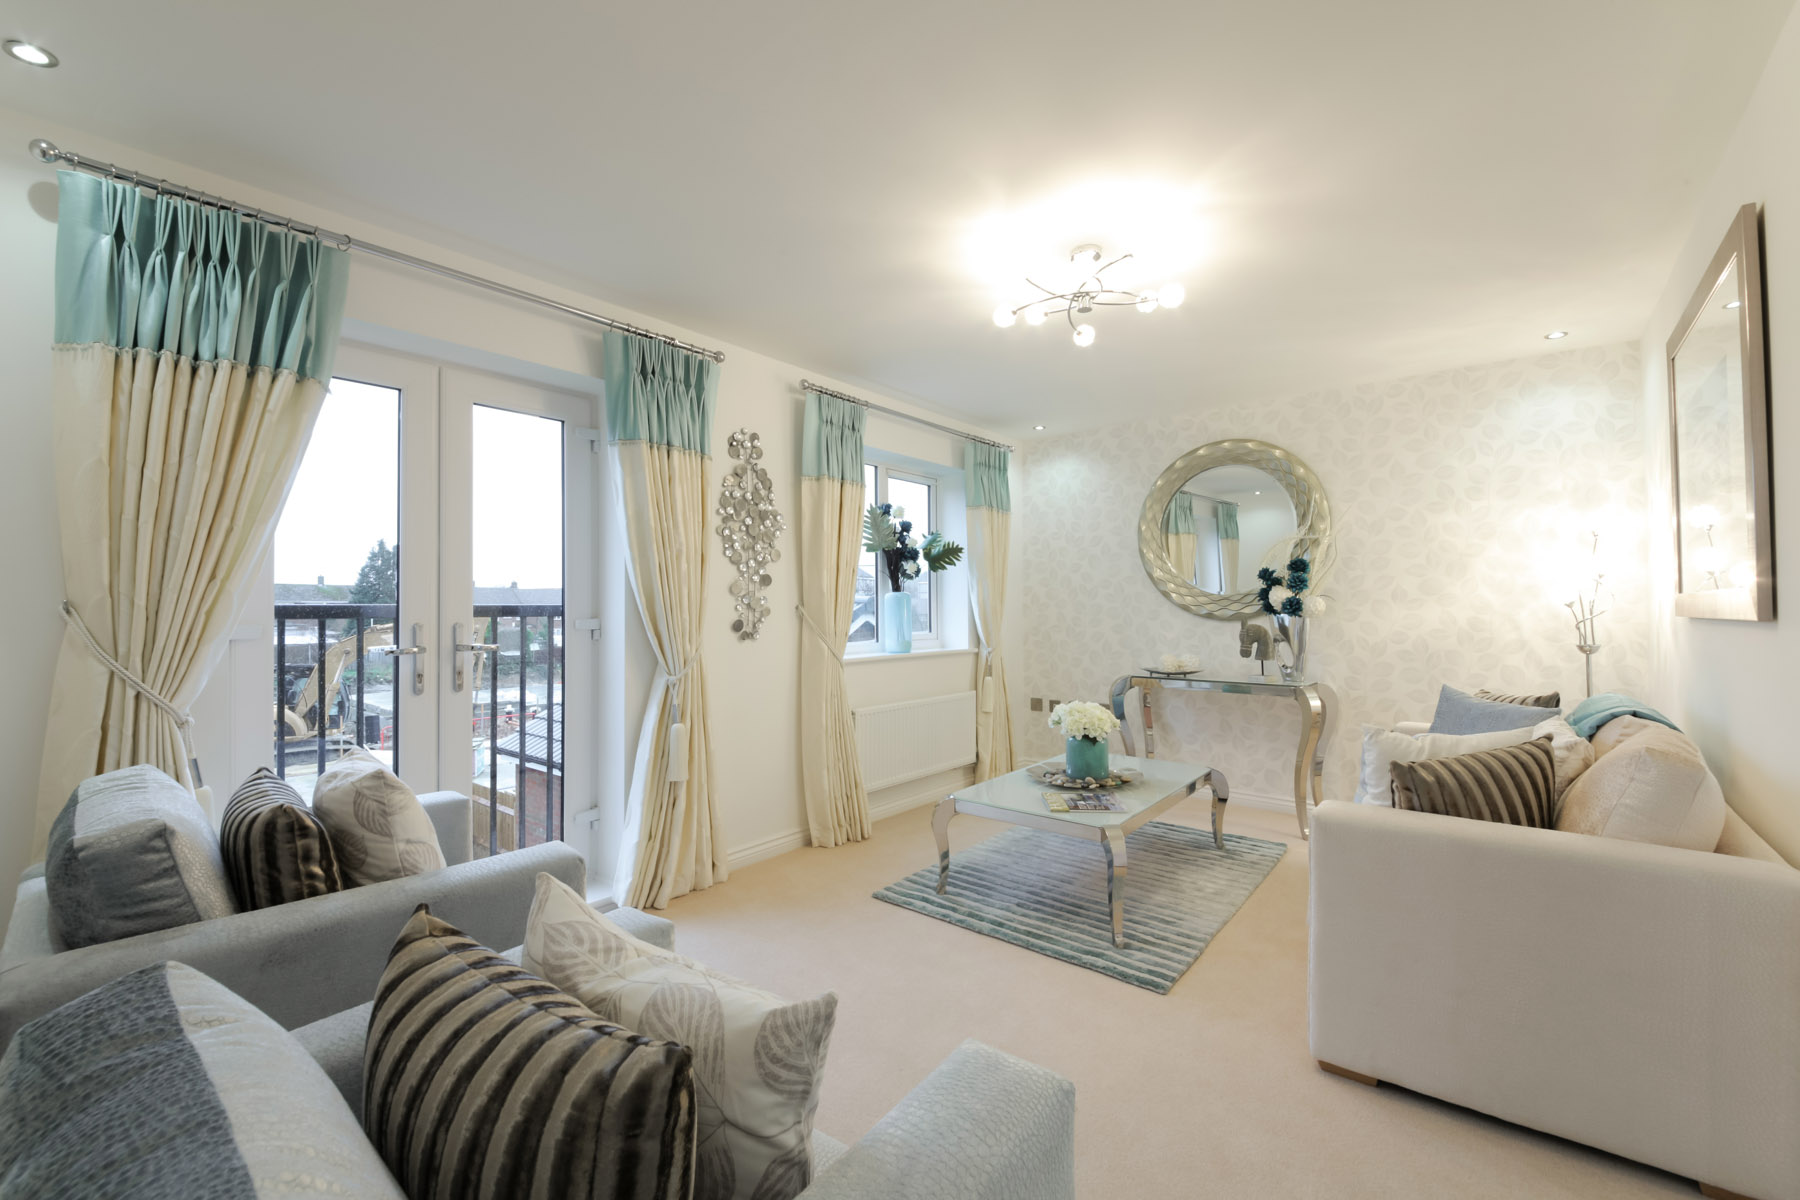 TW Exeter - Cranbrook - Danbury example family room